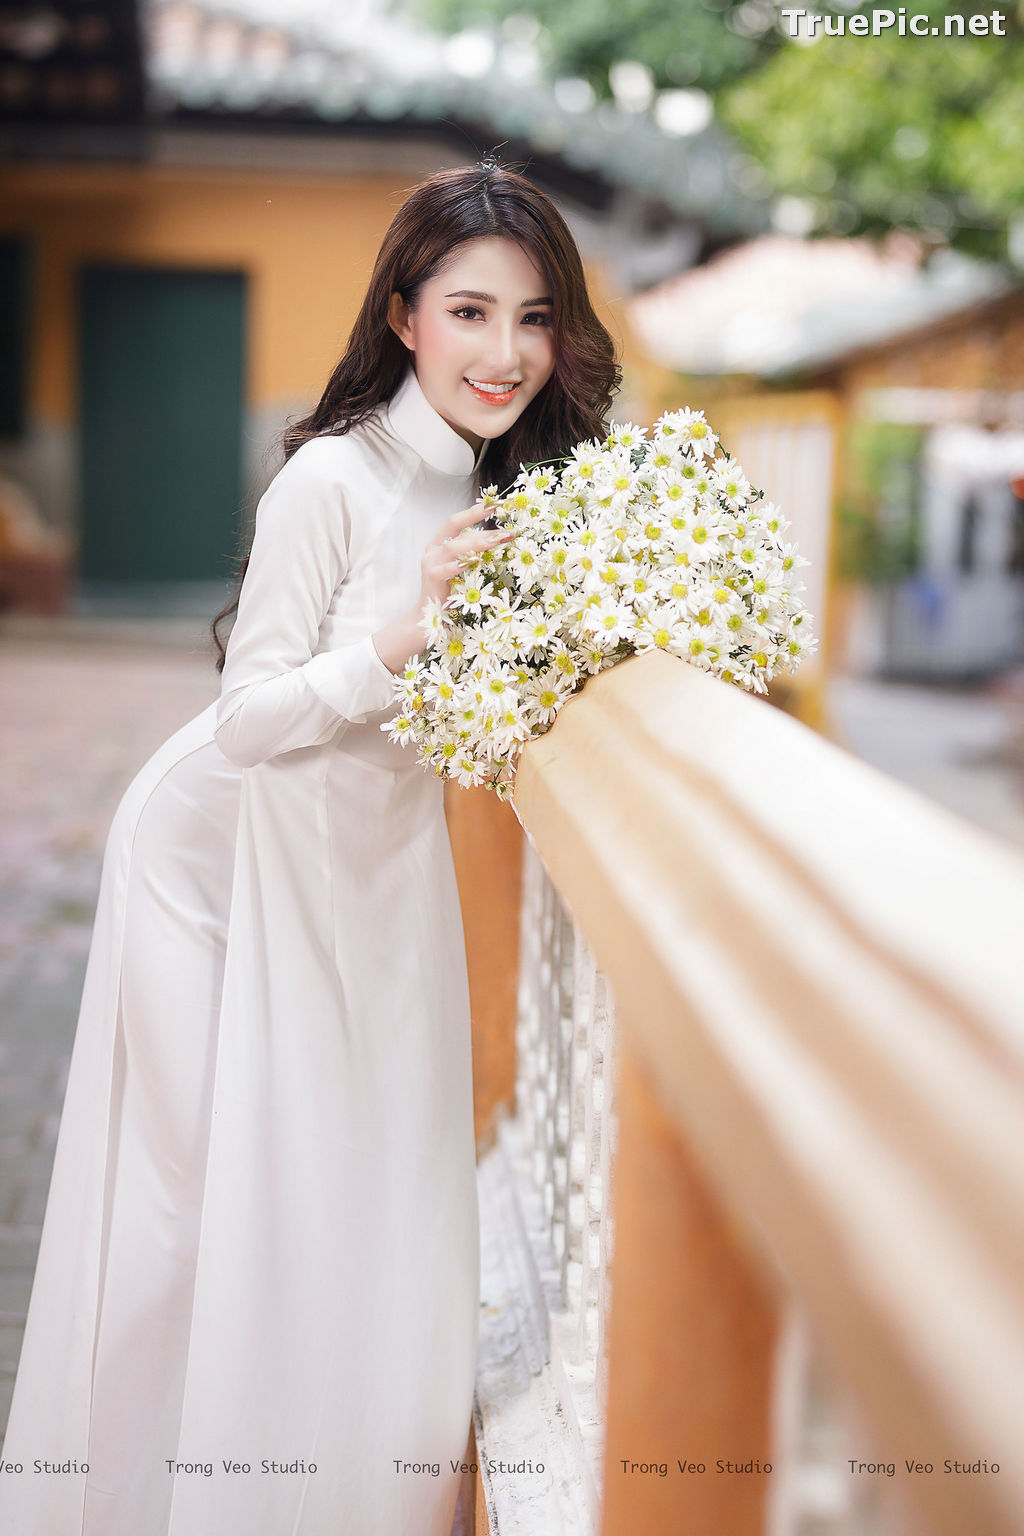 Image The Beauty of Vietnamese Girls with Traditional Dress (Ao Dai) #3 - TruePic.net - Picture-8